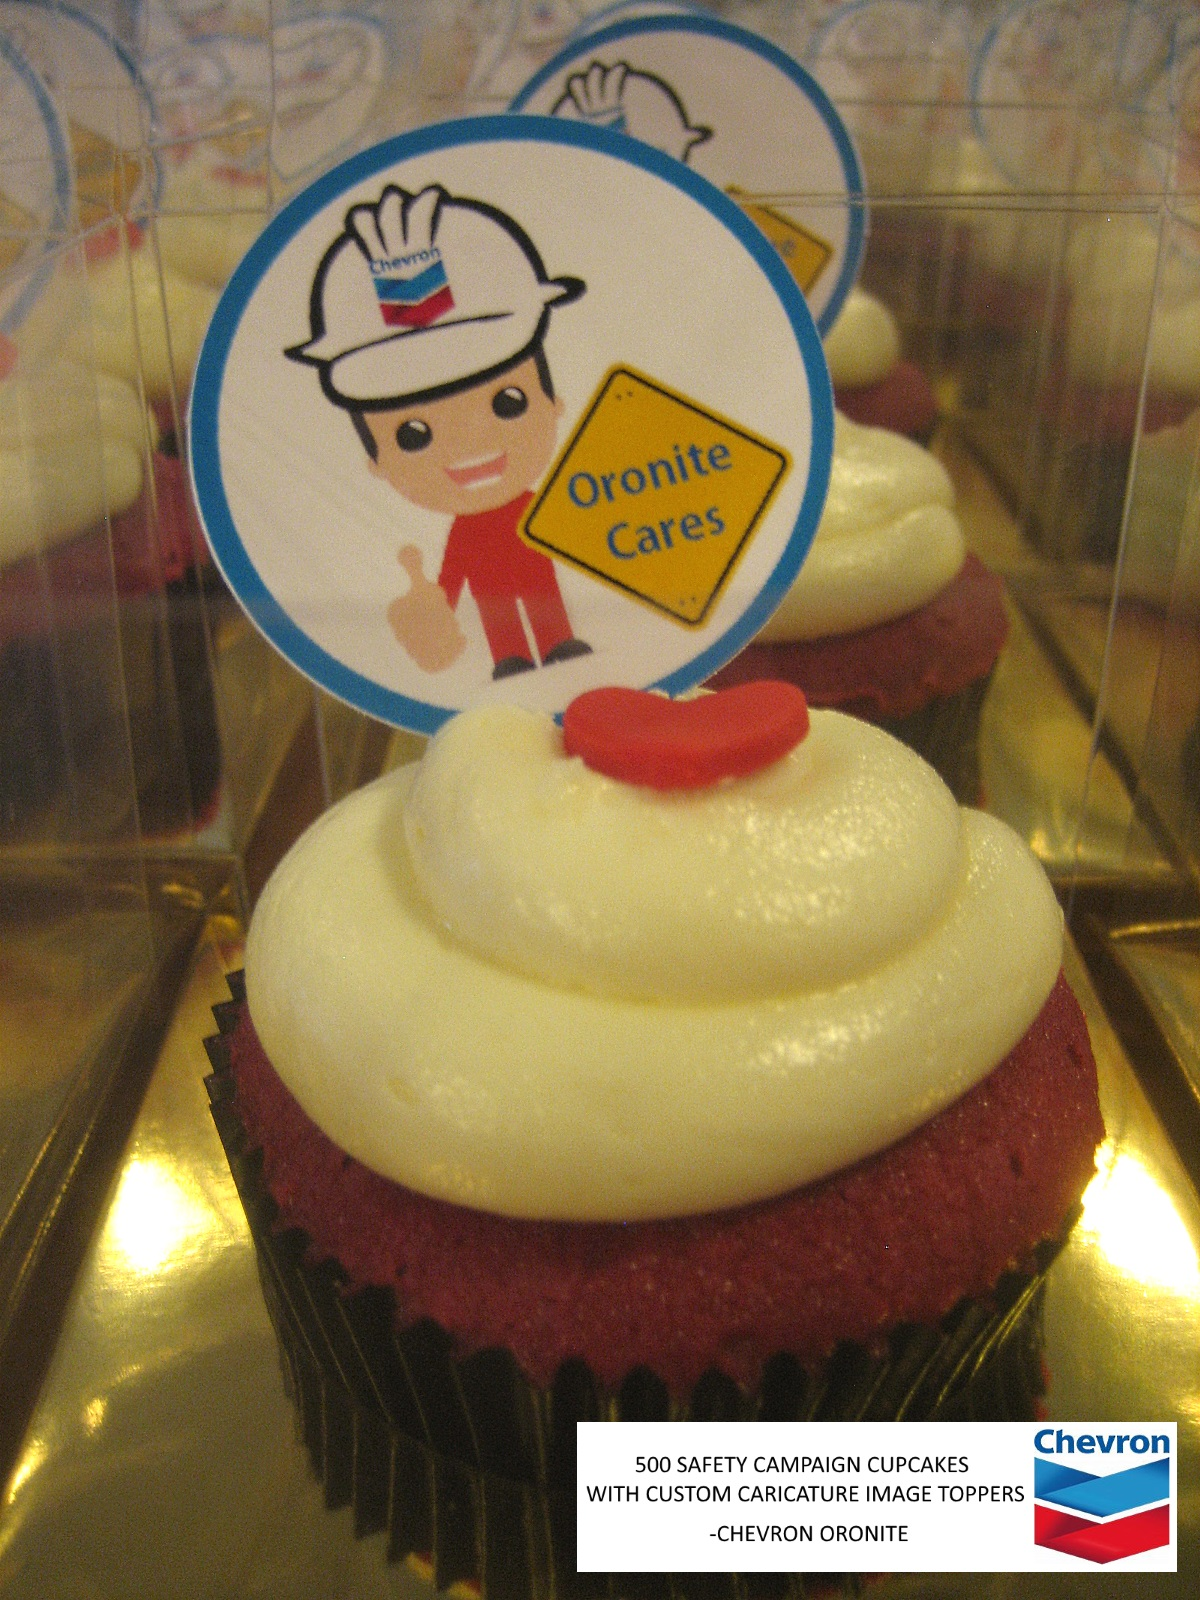 Chevron Safety Campaign Corporate Cupcakes